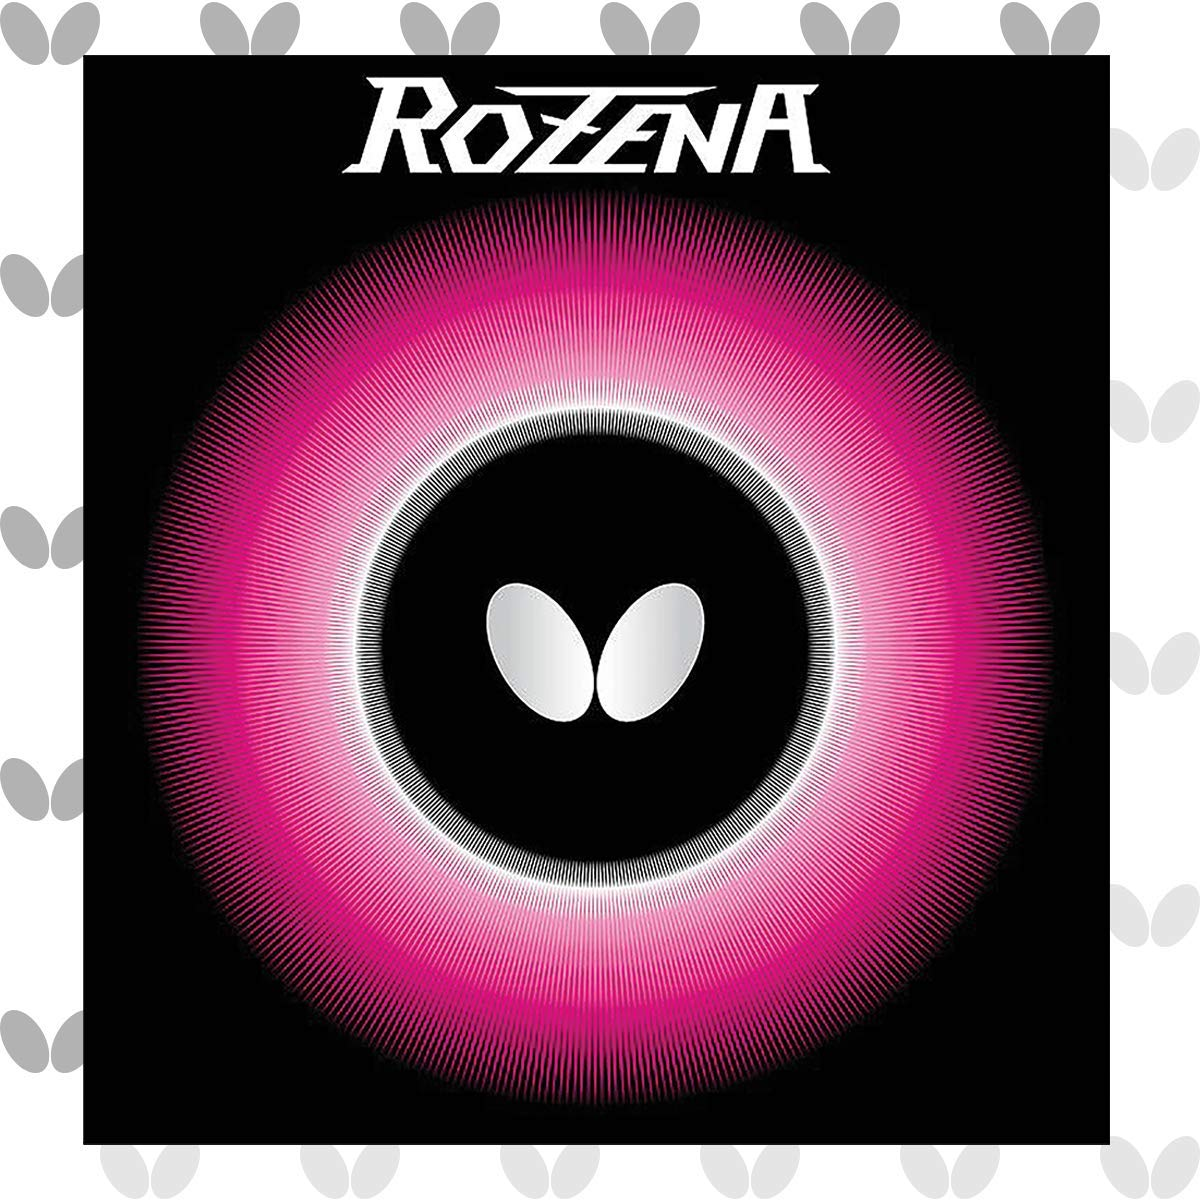 Butterfly Rozena Table Tennis Rubber - 1.7 mm , 1.9 mm, or 2.1 mm - Red or Black - 1 Inverted Table Tennis Rubber Sheet - Professional Table Tennis Rubber - Butterfly Table Tennis Rubber